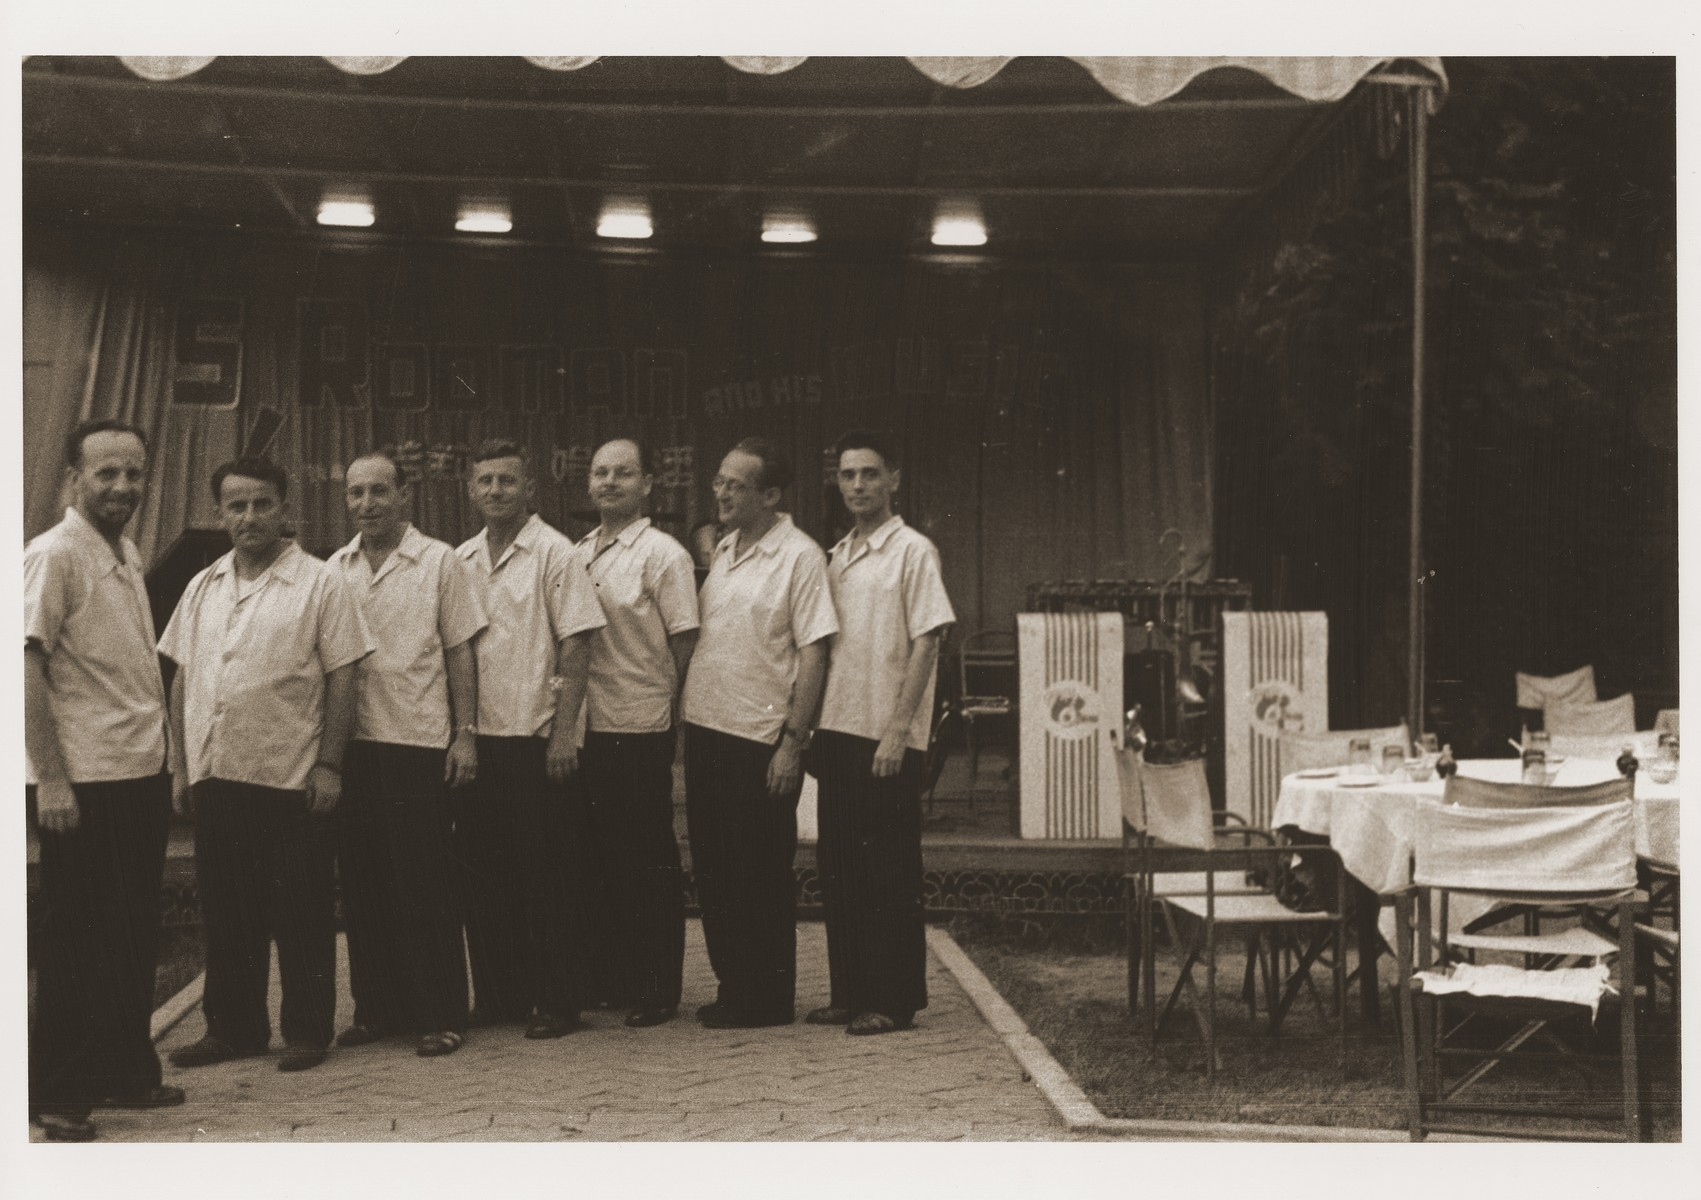 Members of the Siegmund Rodman band at the Roof Garden restaurant on Ward Road in Shanghai.  The Roof Garden was a favorite cafe for Jewish refugees in Shanghai.